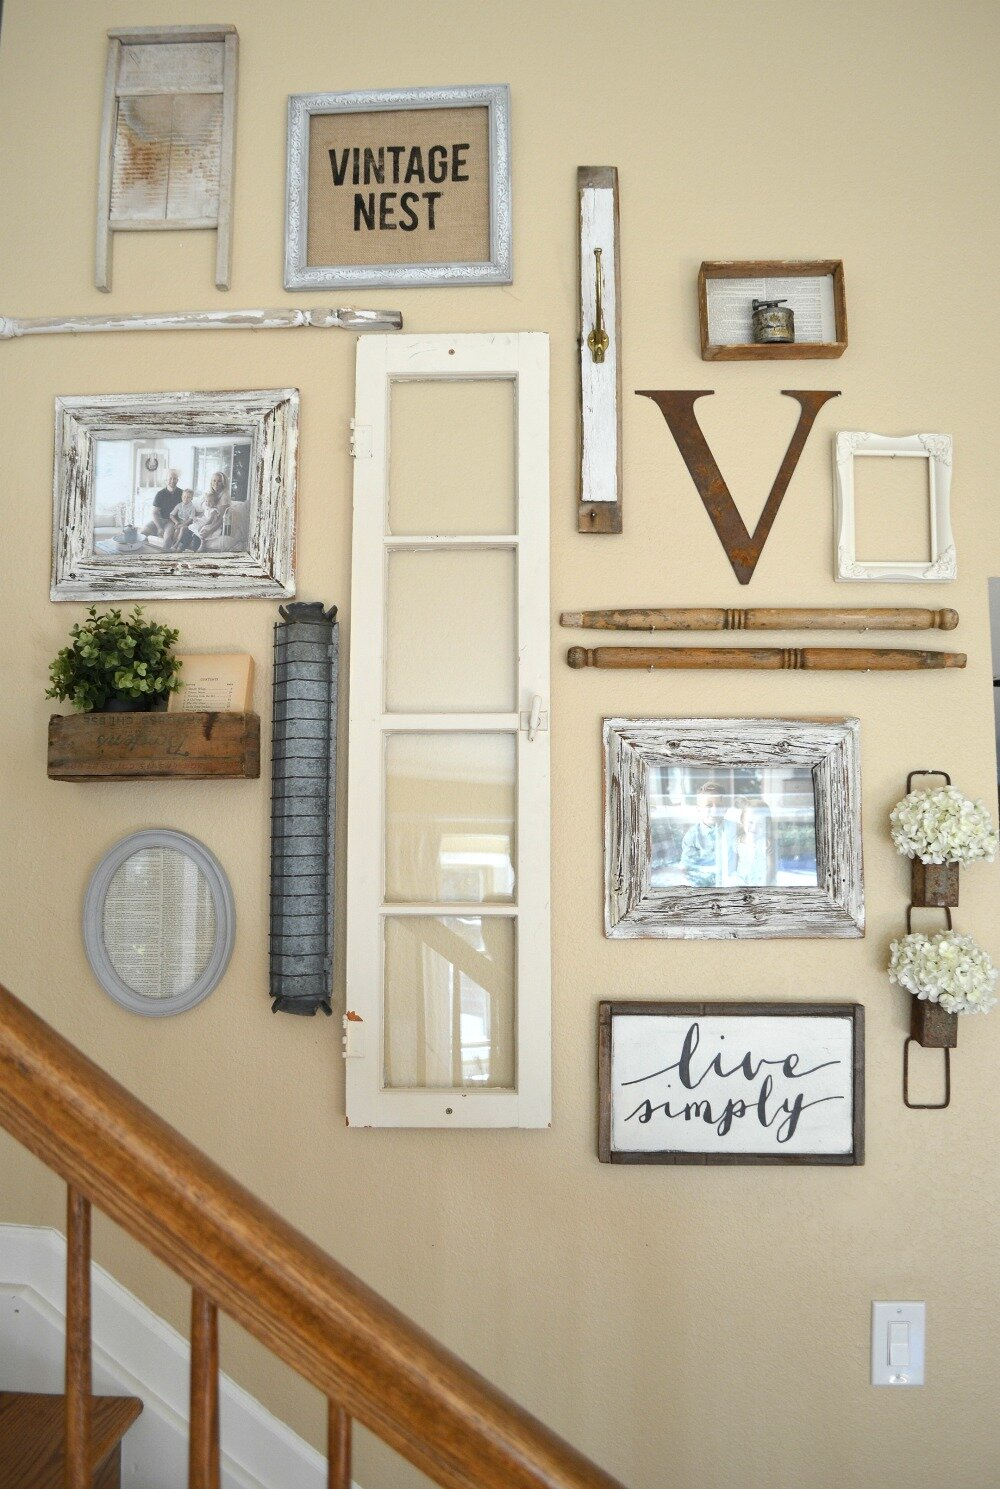 You can even create a completely bespoke gallery wall of objects you have collected over the years. Personally I think letters work really well in gallery walls as it helps to break them up a bit! Credit: sarahjoyblog.com